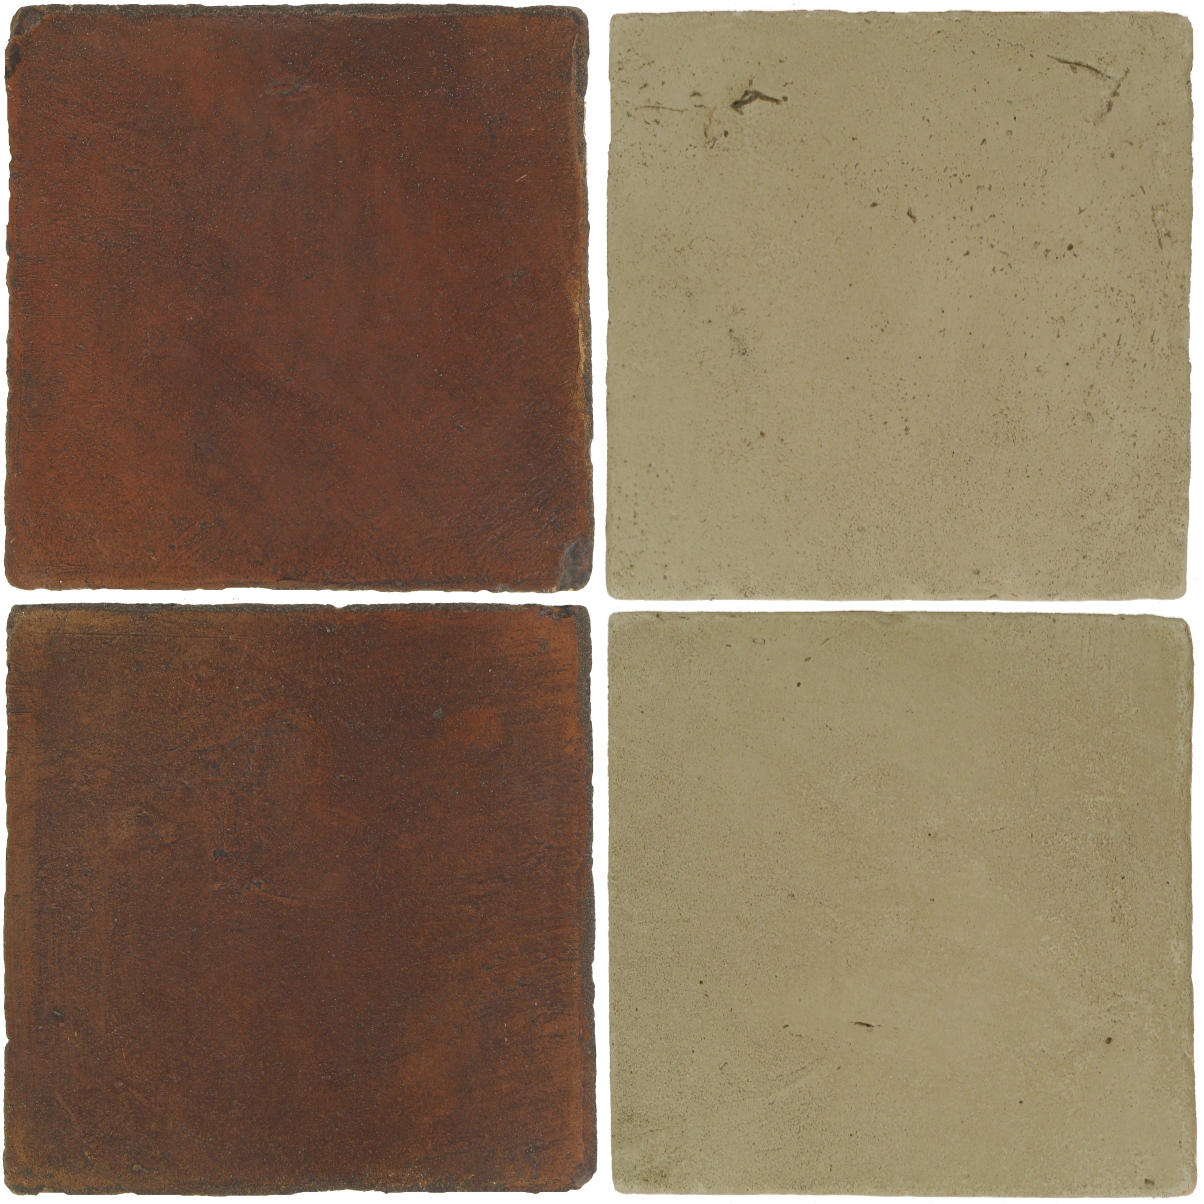 Pedralbes Antique Terracotta  2 Color Combinations  OHS-PSOW Old World + VTG-PGDW Dirty W.